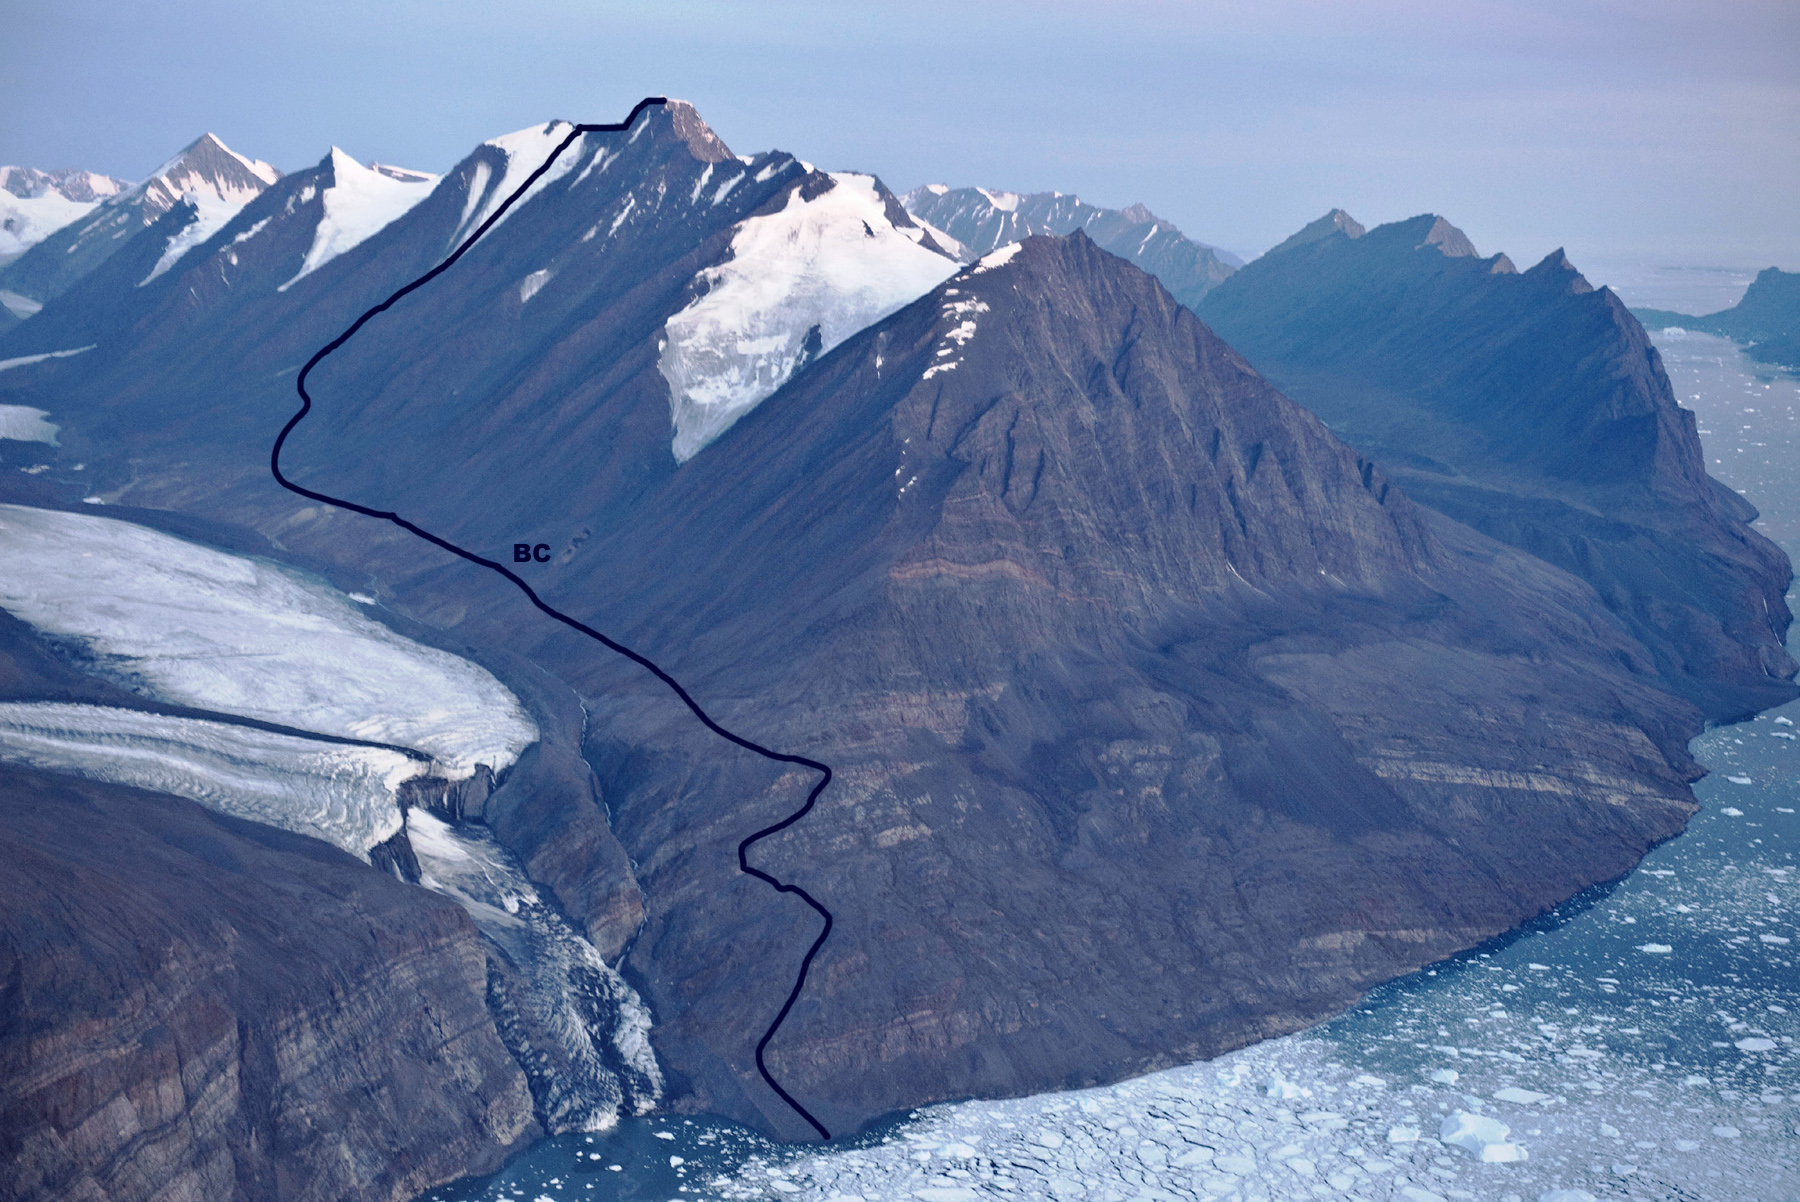 Aerial view of Pt 2.280m, showing the route of first ascent up the east flank.